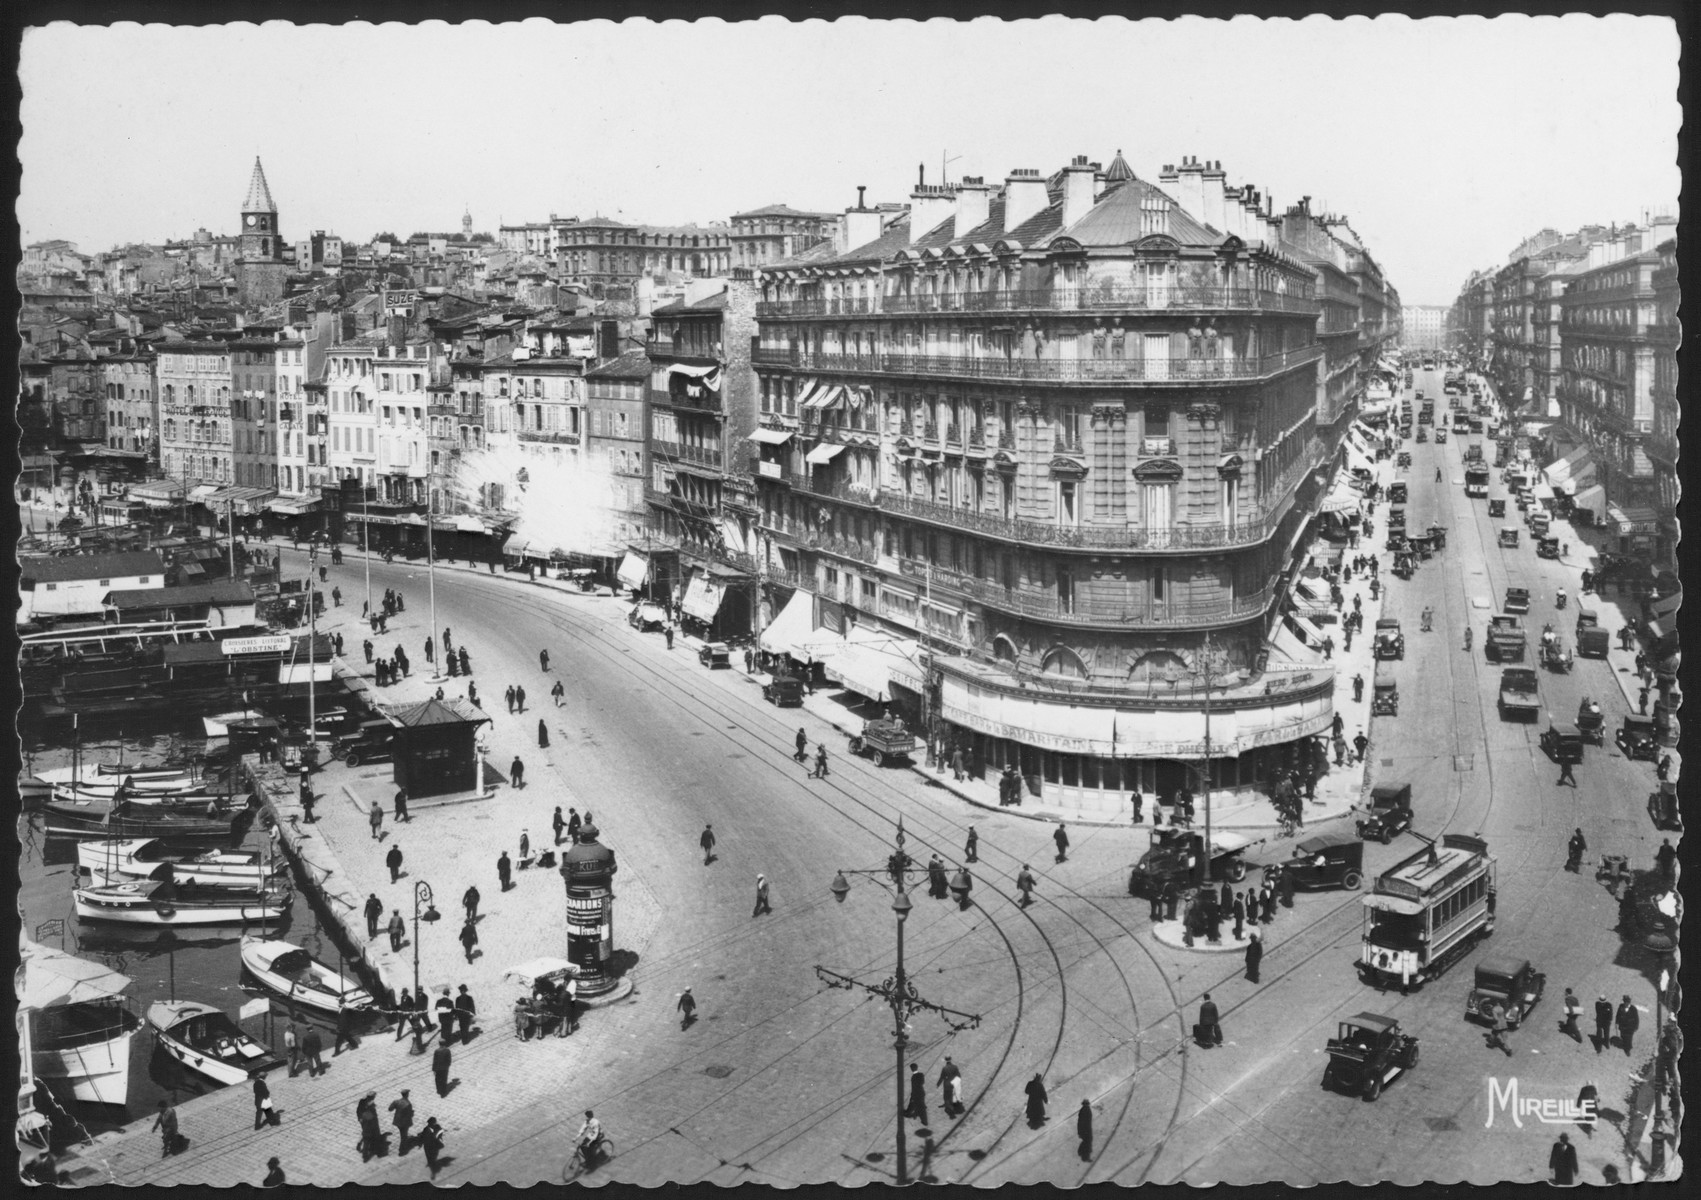 Postcard showing a view of a major intersection in Marseilles, France.